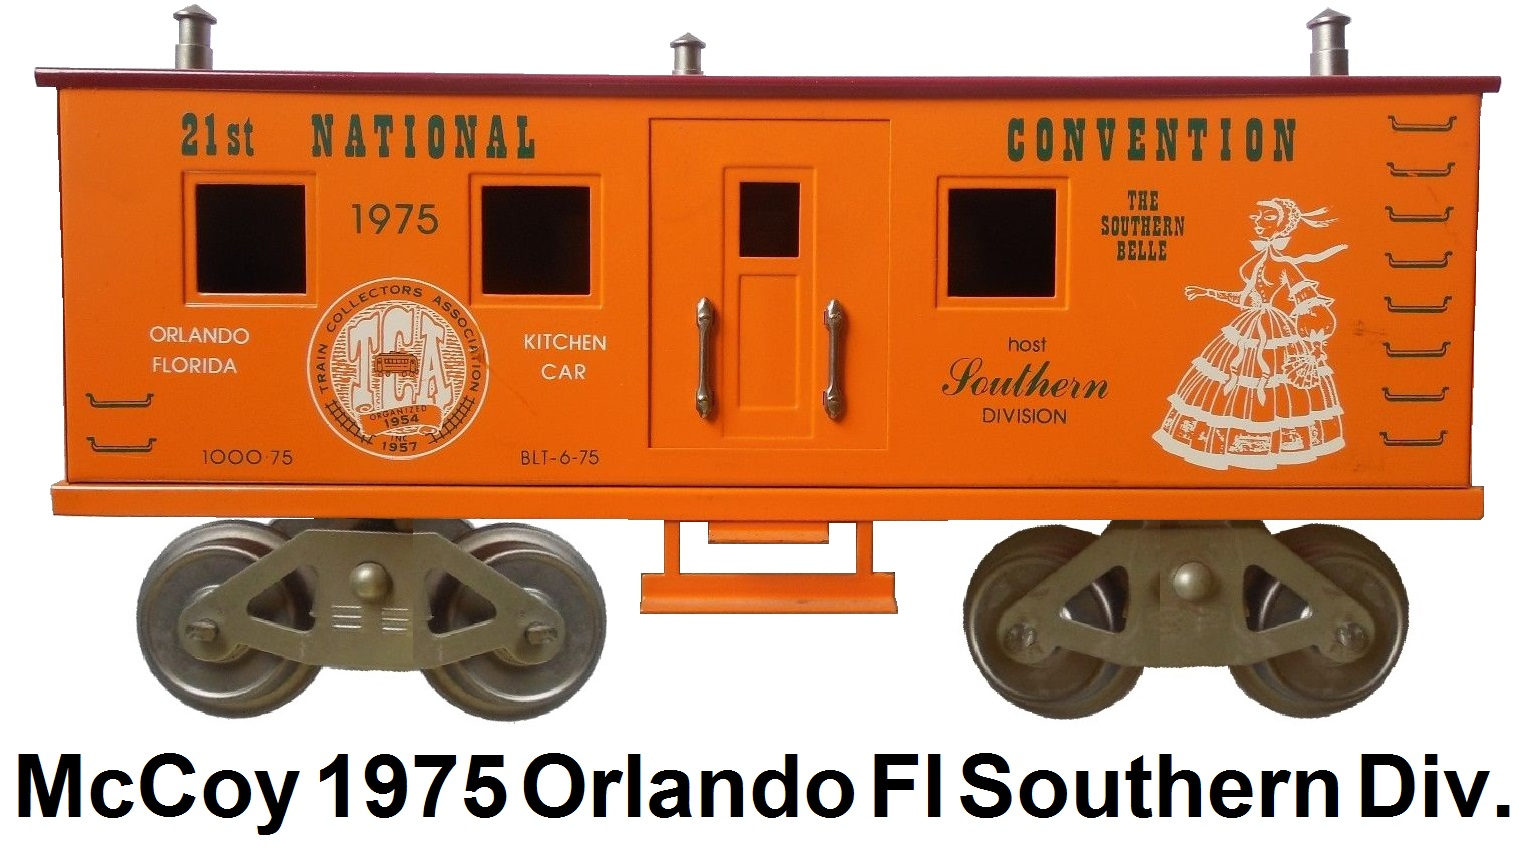 McCoy 1975 21st TCA Convention Standard gauge kitchen car representing the Southern Division in Orlando Florida